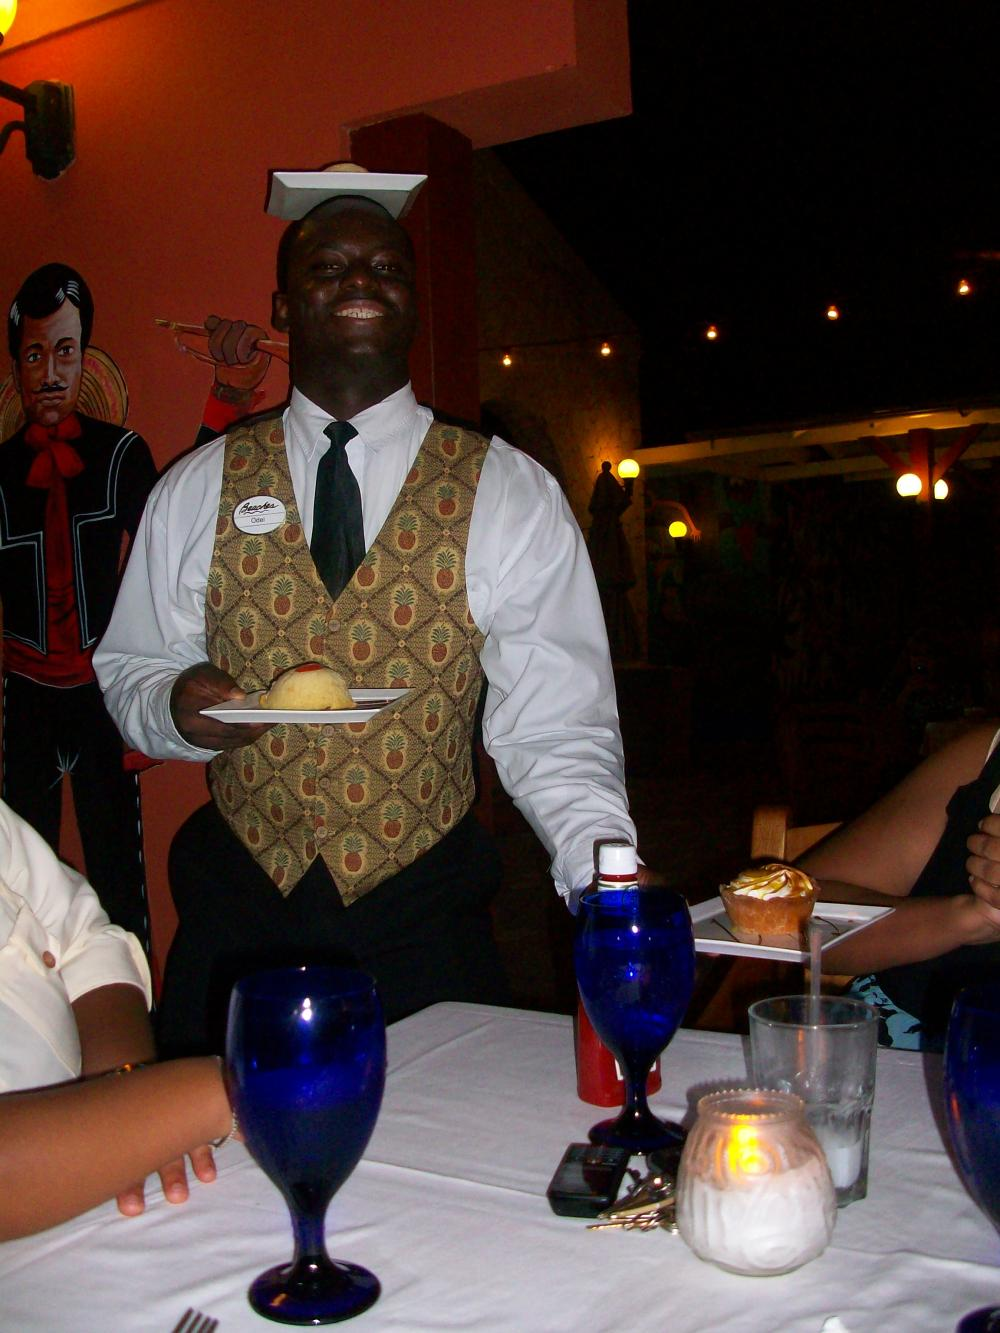 The waiter at Arizona's was a lot of fun. The food was good, too!